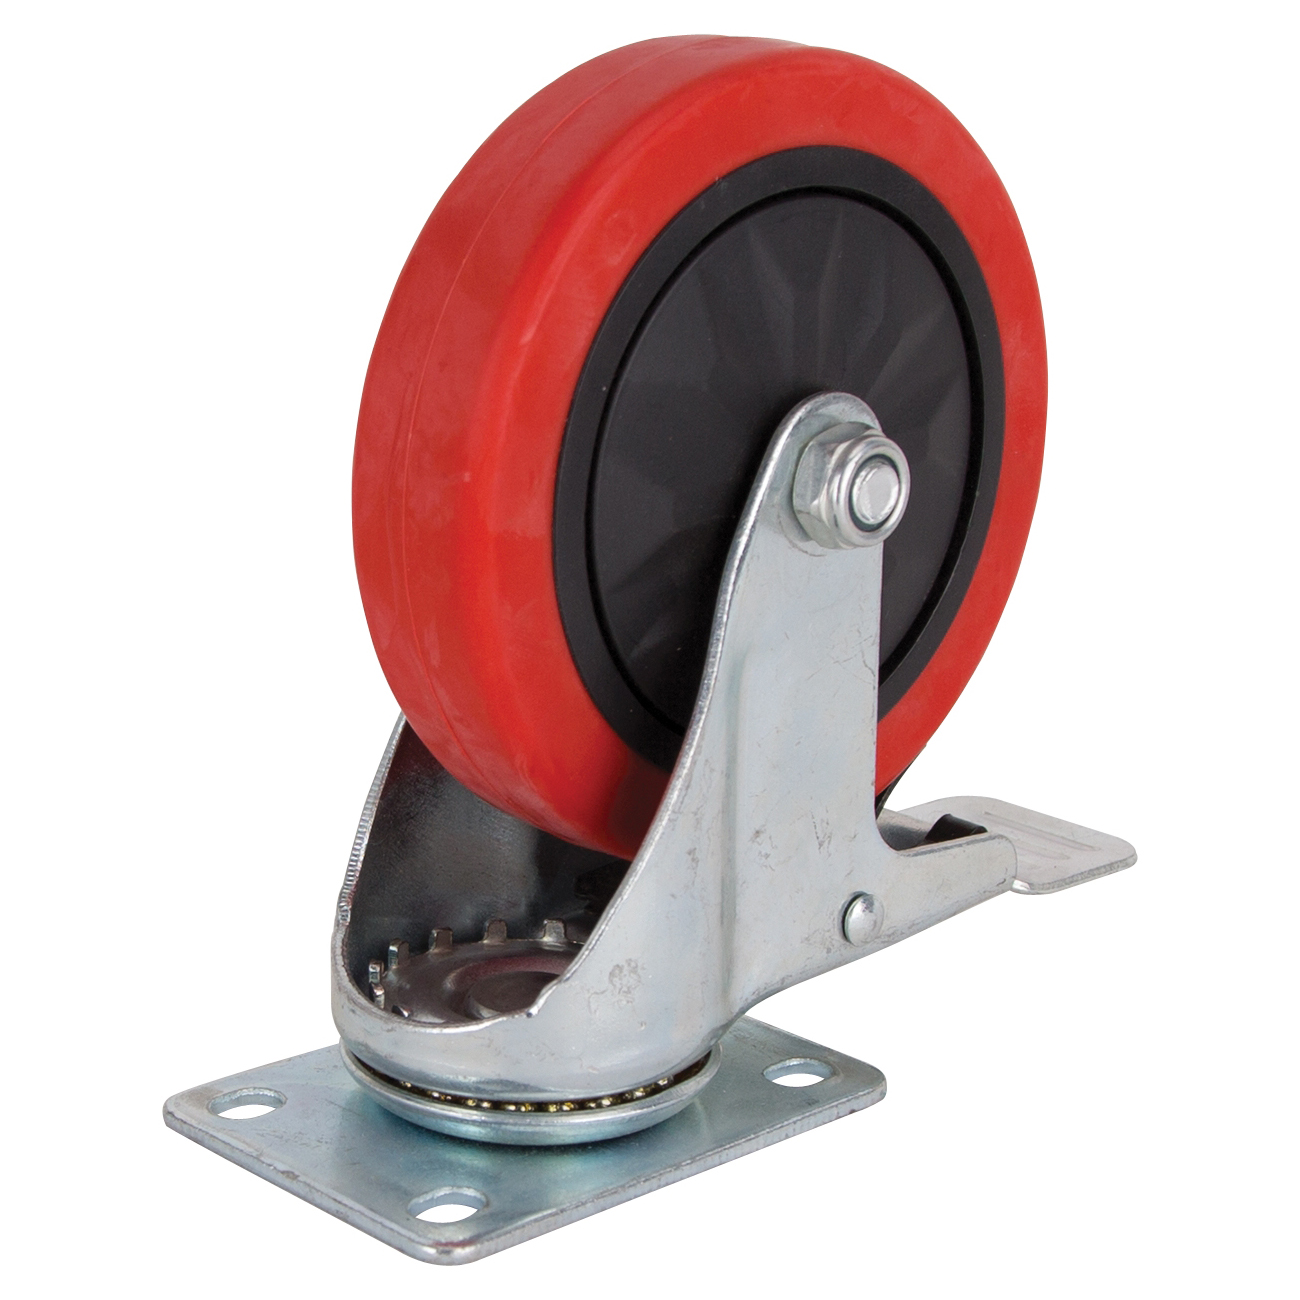 Picture of ProSource JC-388-G Swivel Caster with Brake, 5 in Dia Wheel, Polyurethane Wheel, Red, 275 lb